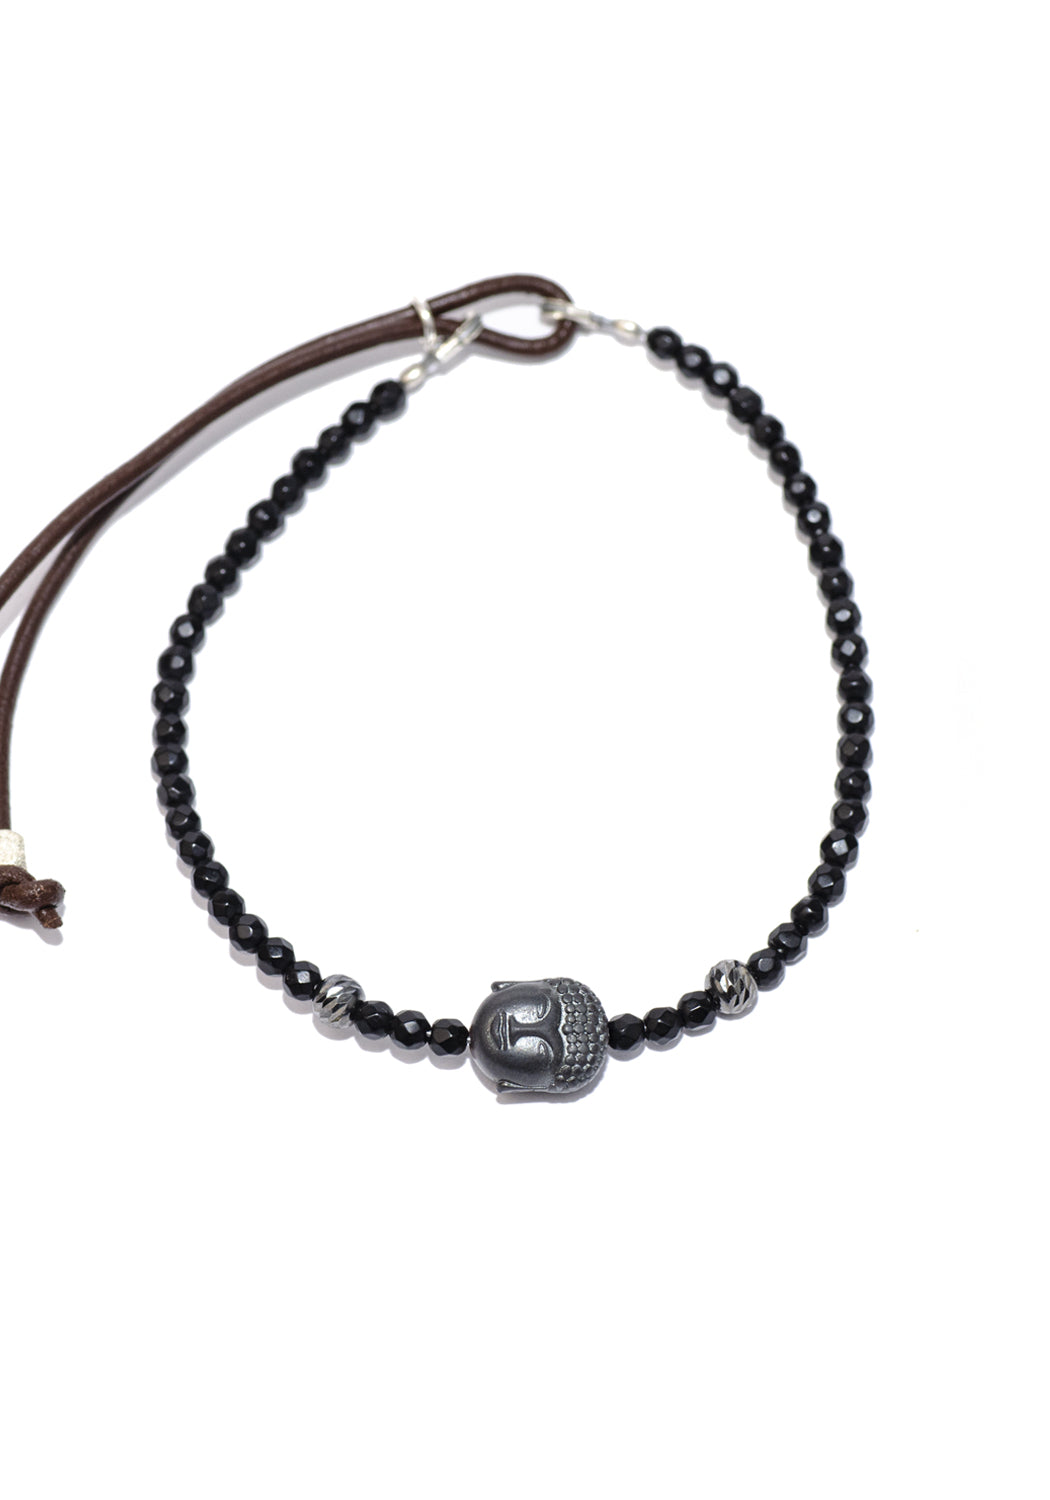 Catherine Michiels Pyrite Buddha Head & Black Agate Bead Bracelet